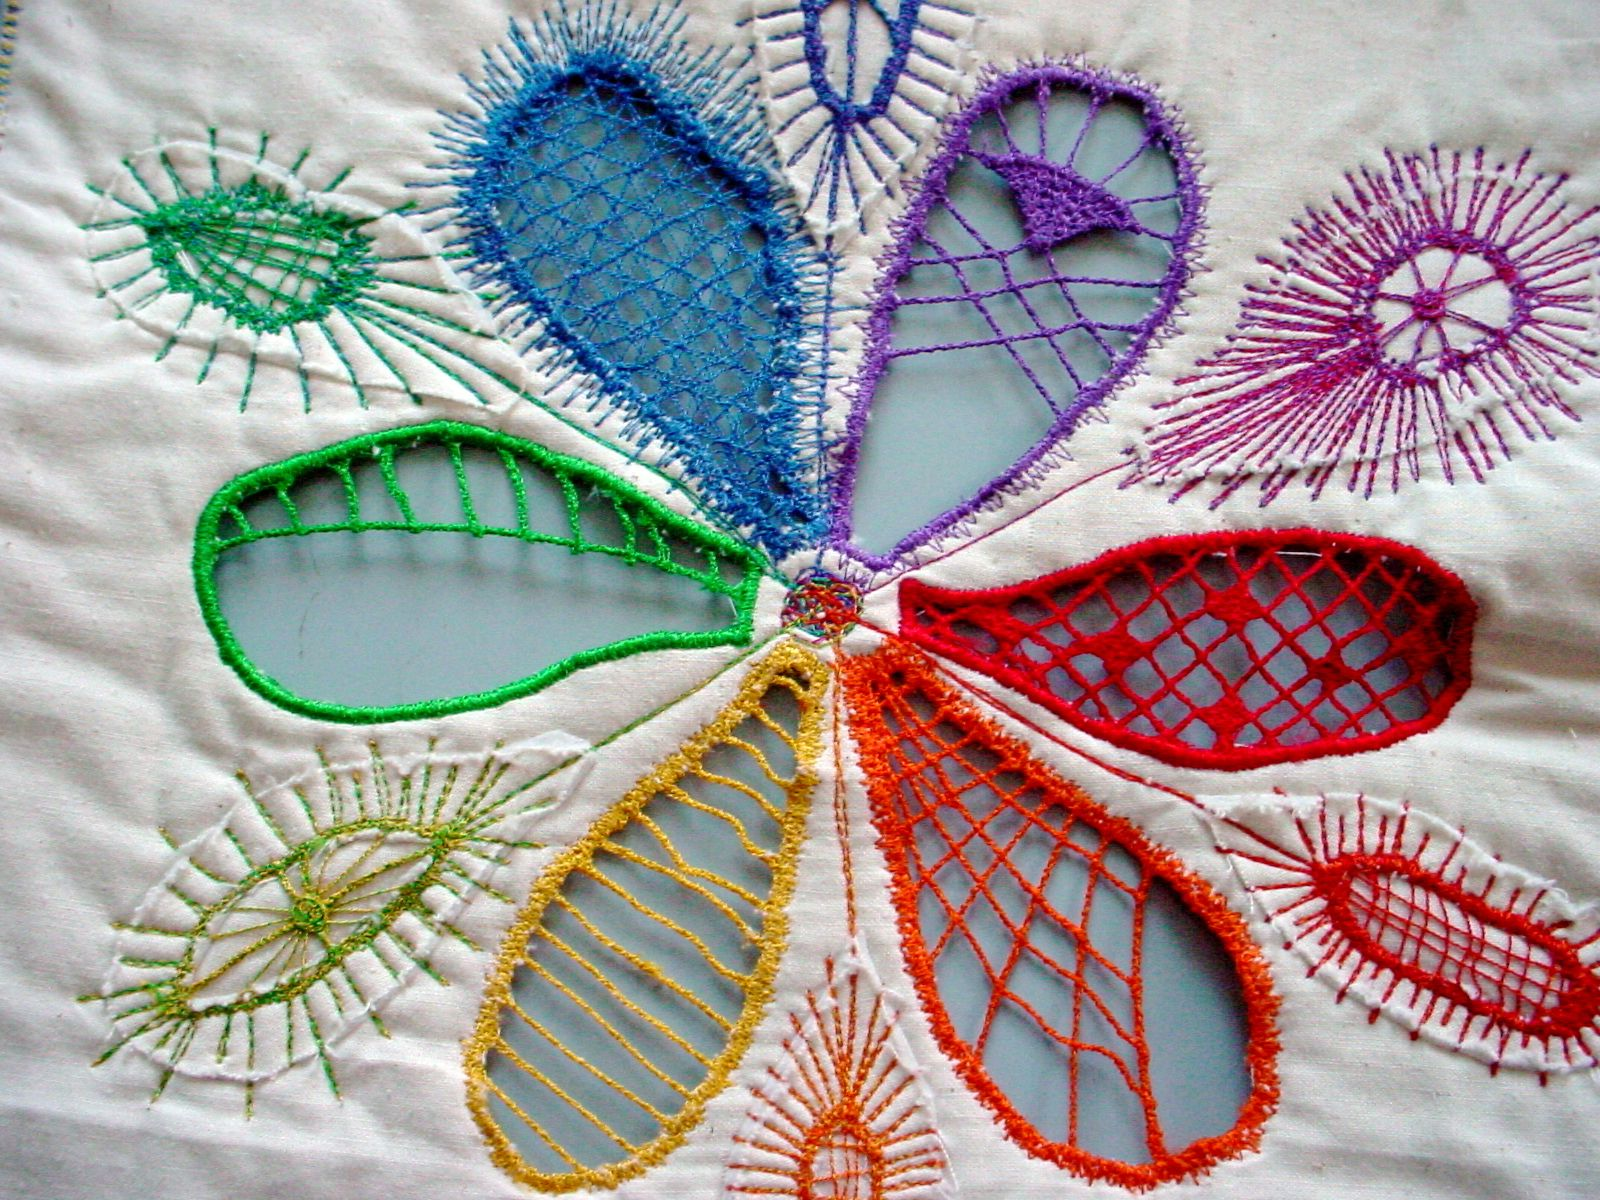 machine embroidery - Google Search